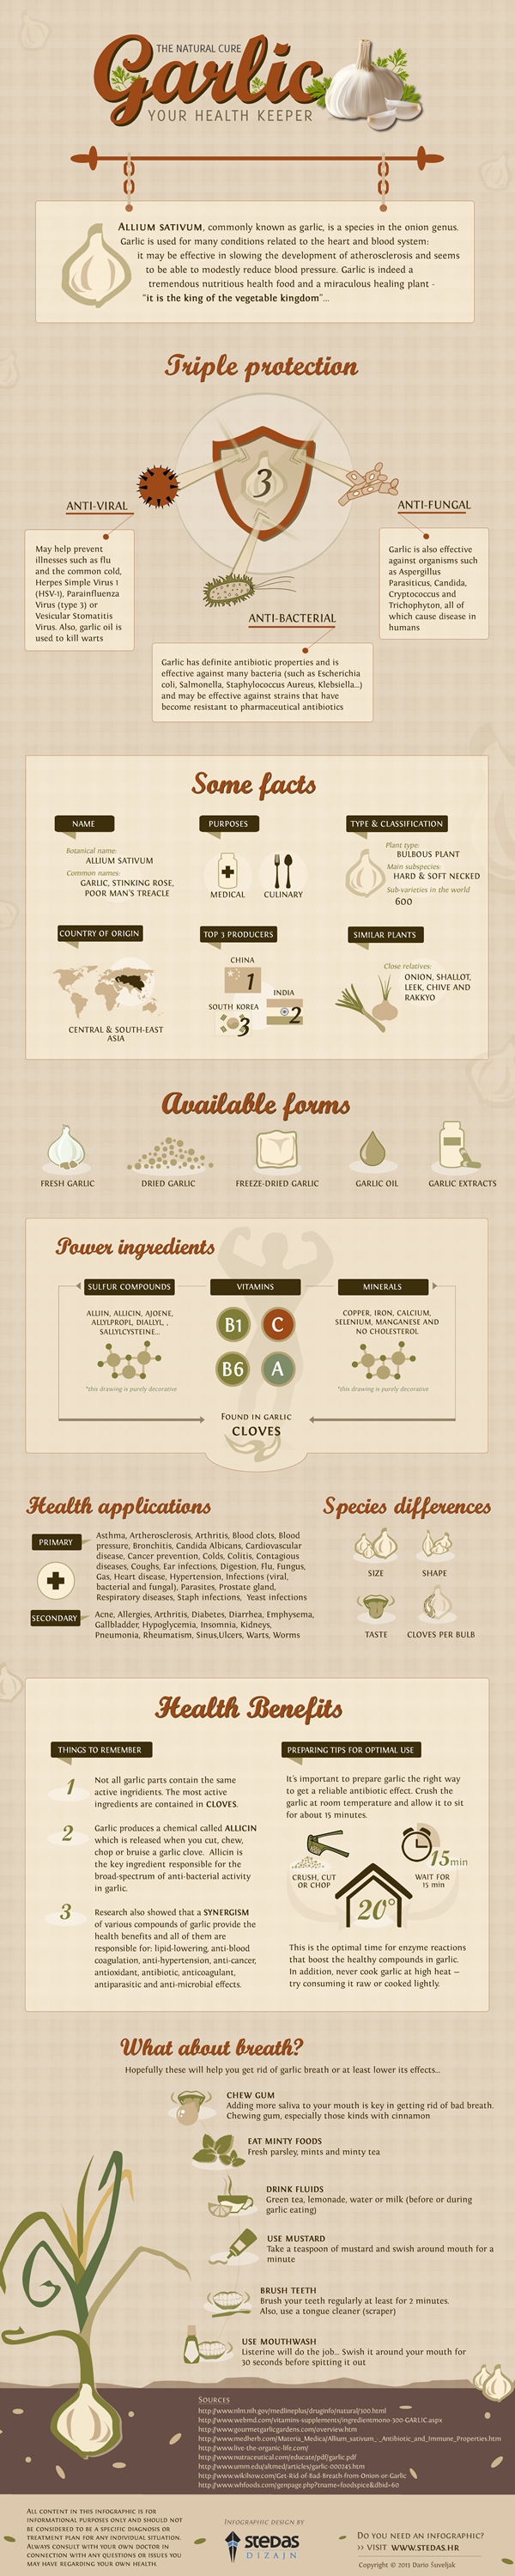 Infographic: Health Benefits of Garlic